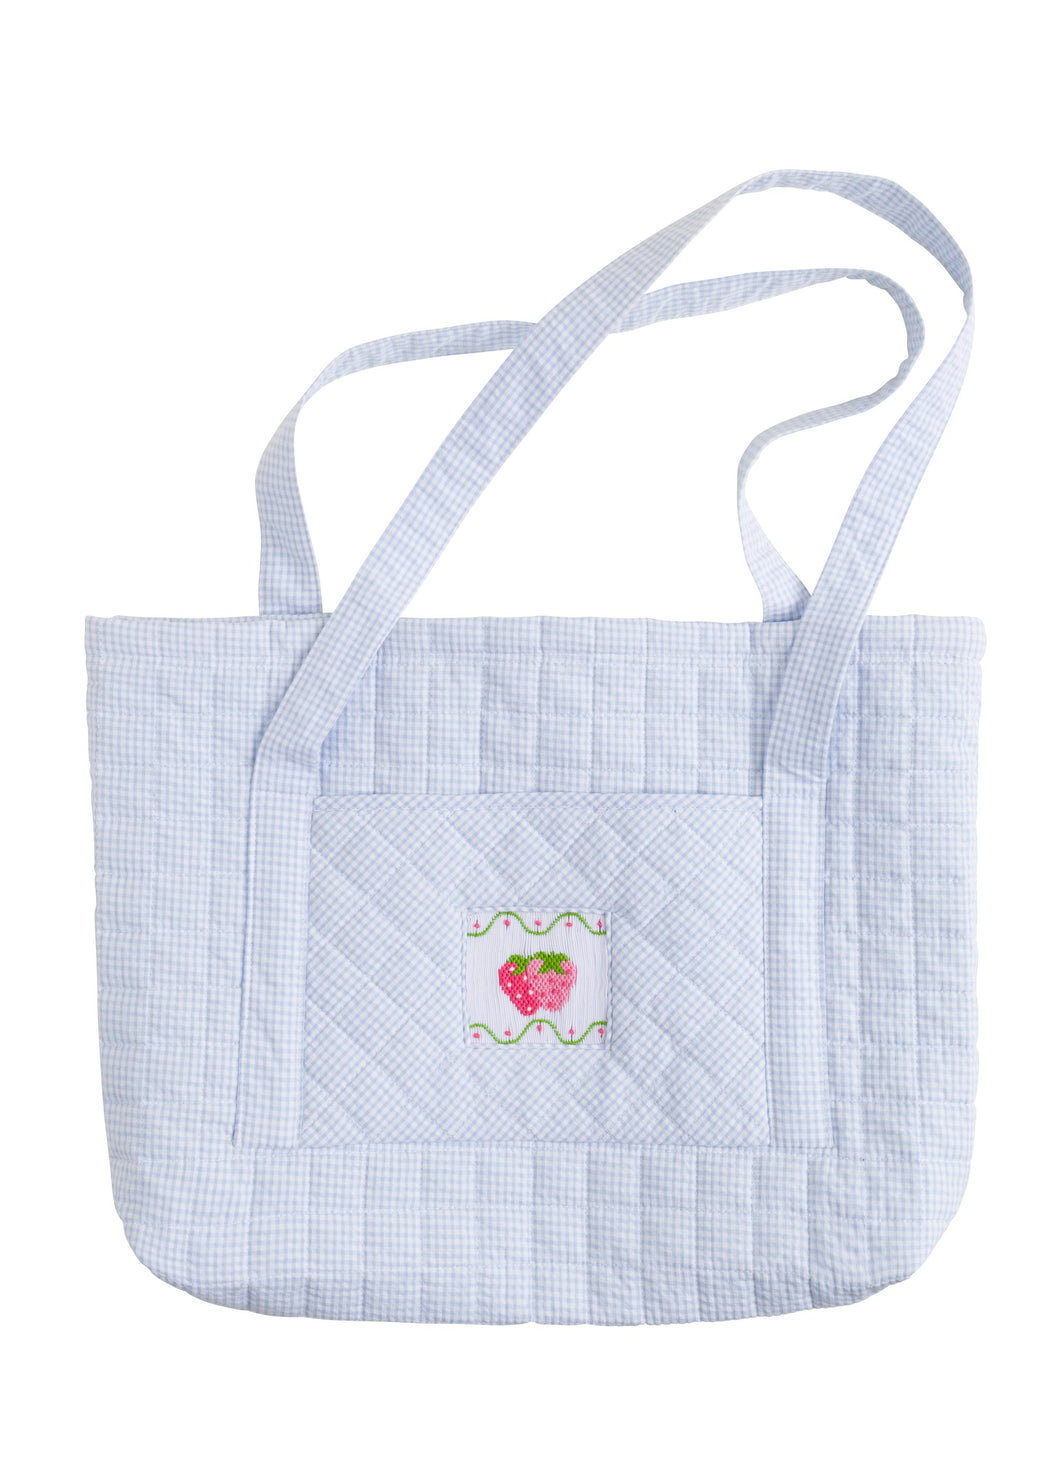 LE Strawberry Tote Bag